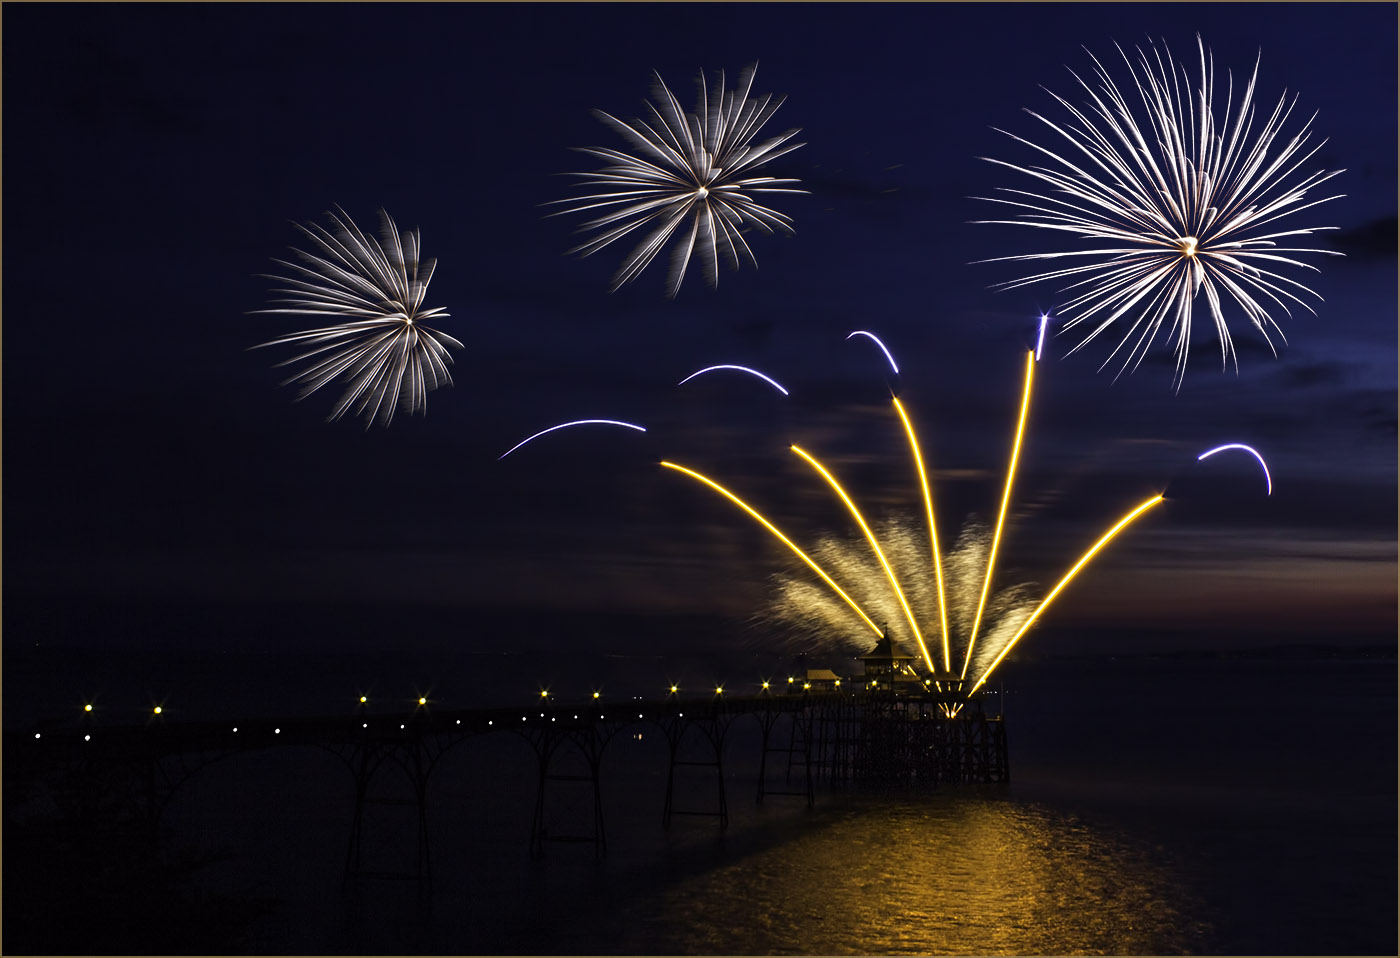 1_Clevedon Fireworks_Ian Johnston.jpg